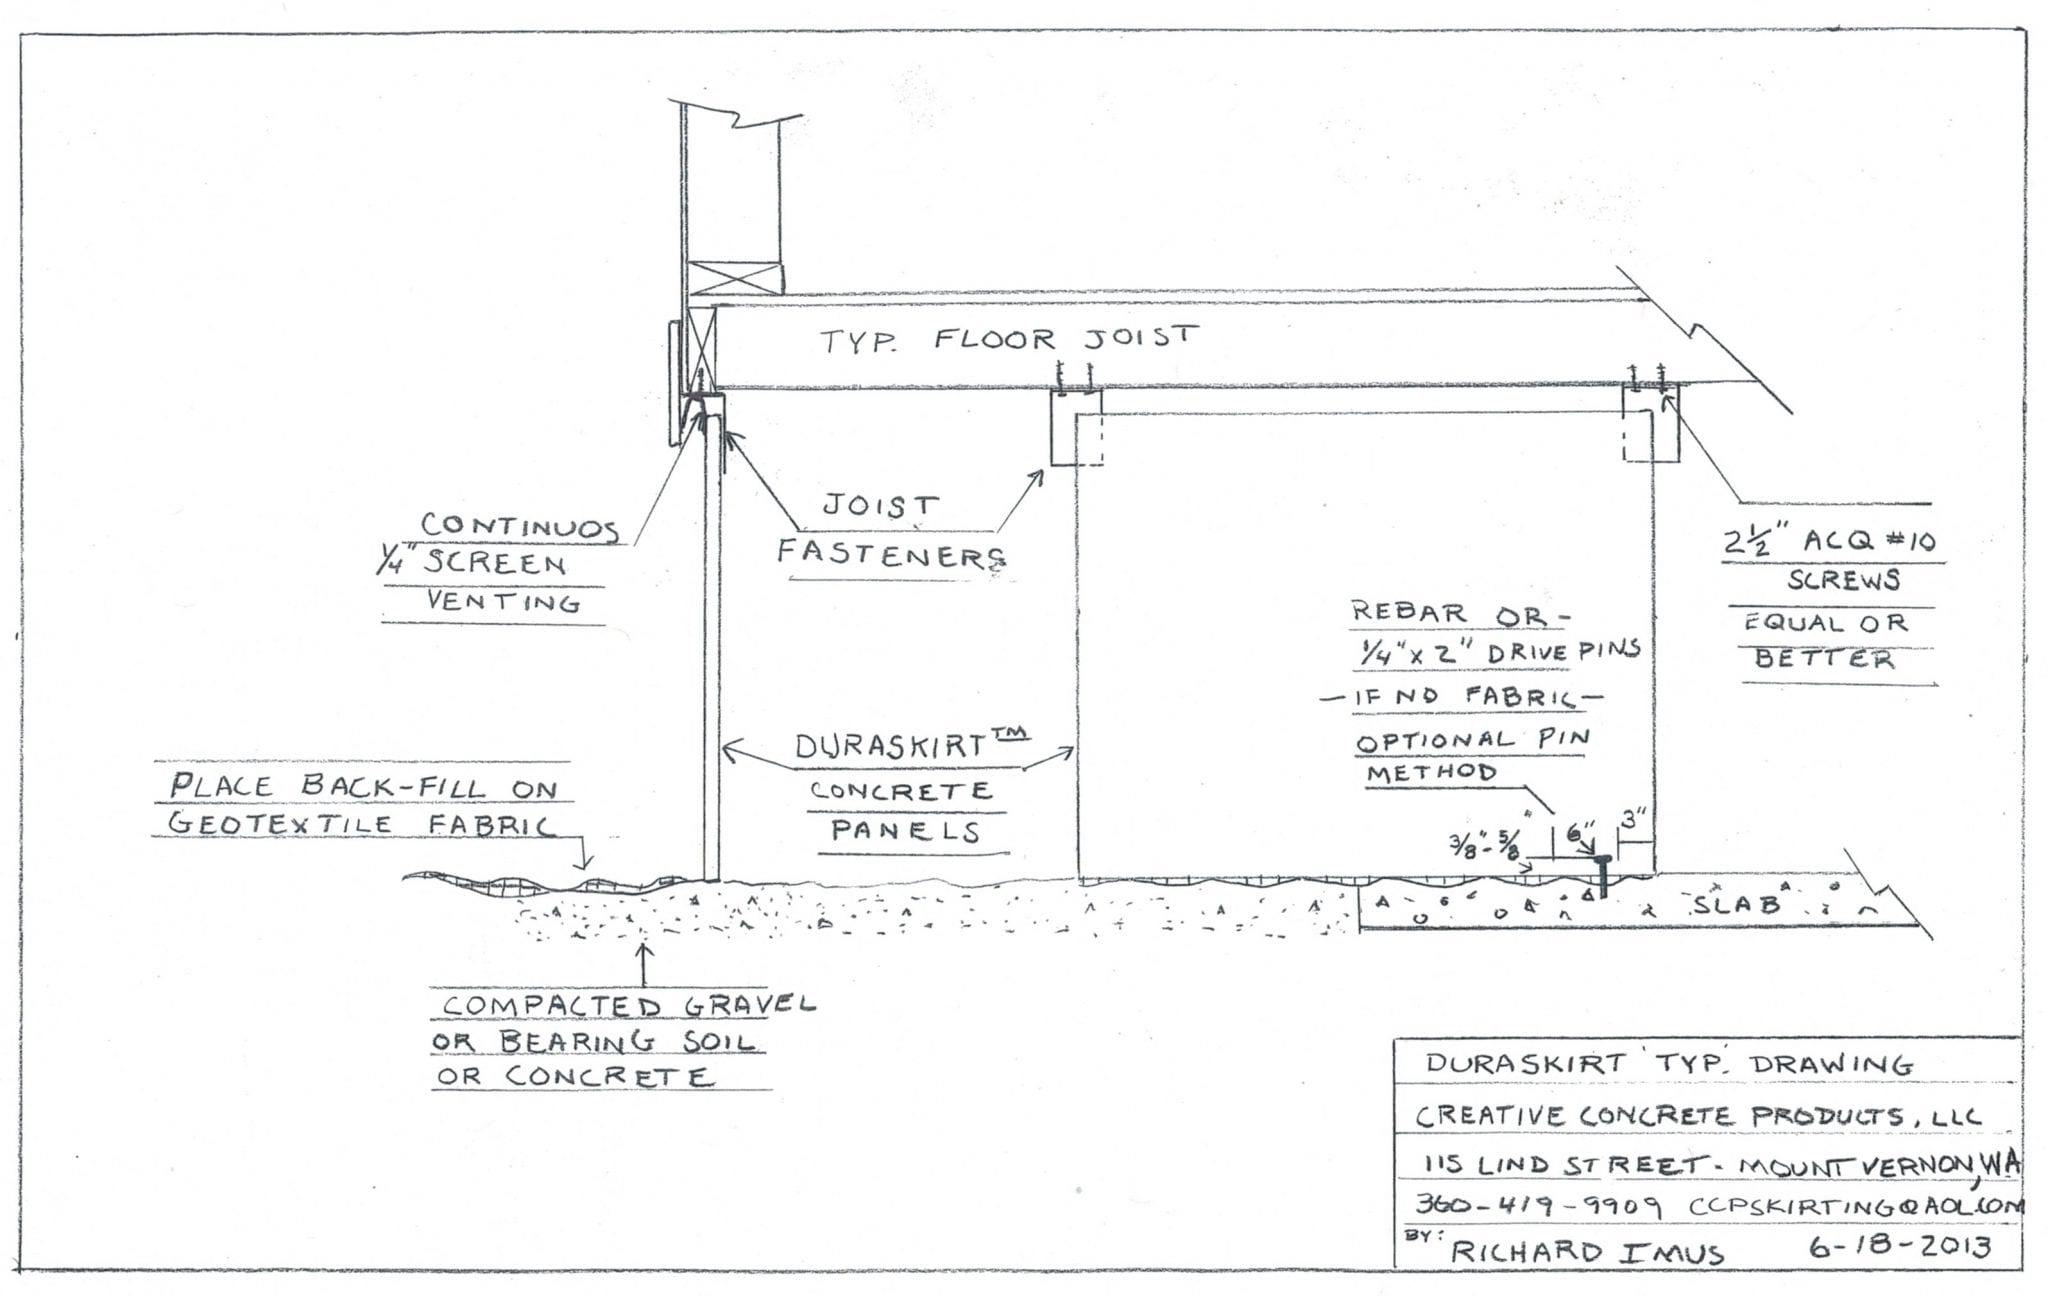 DURASKIRT™ Typical Mobile Home Skirting Installation Drawing.